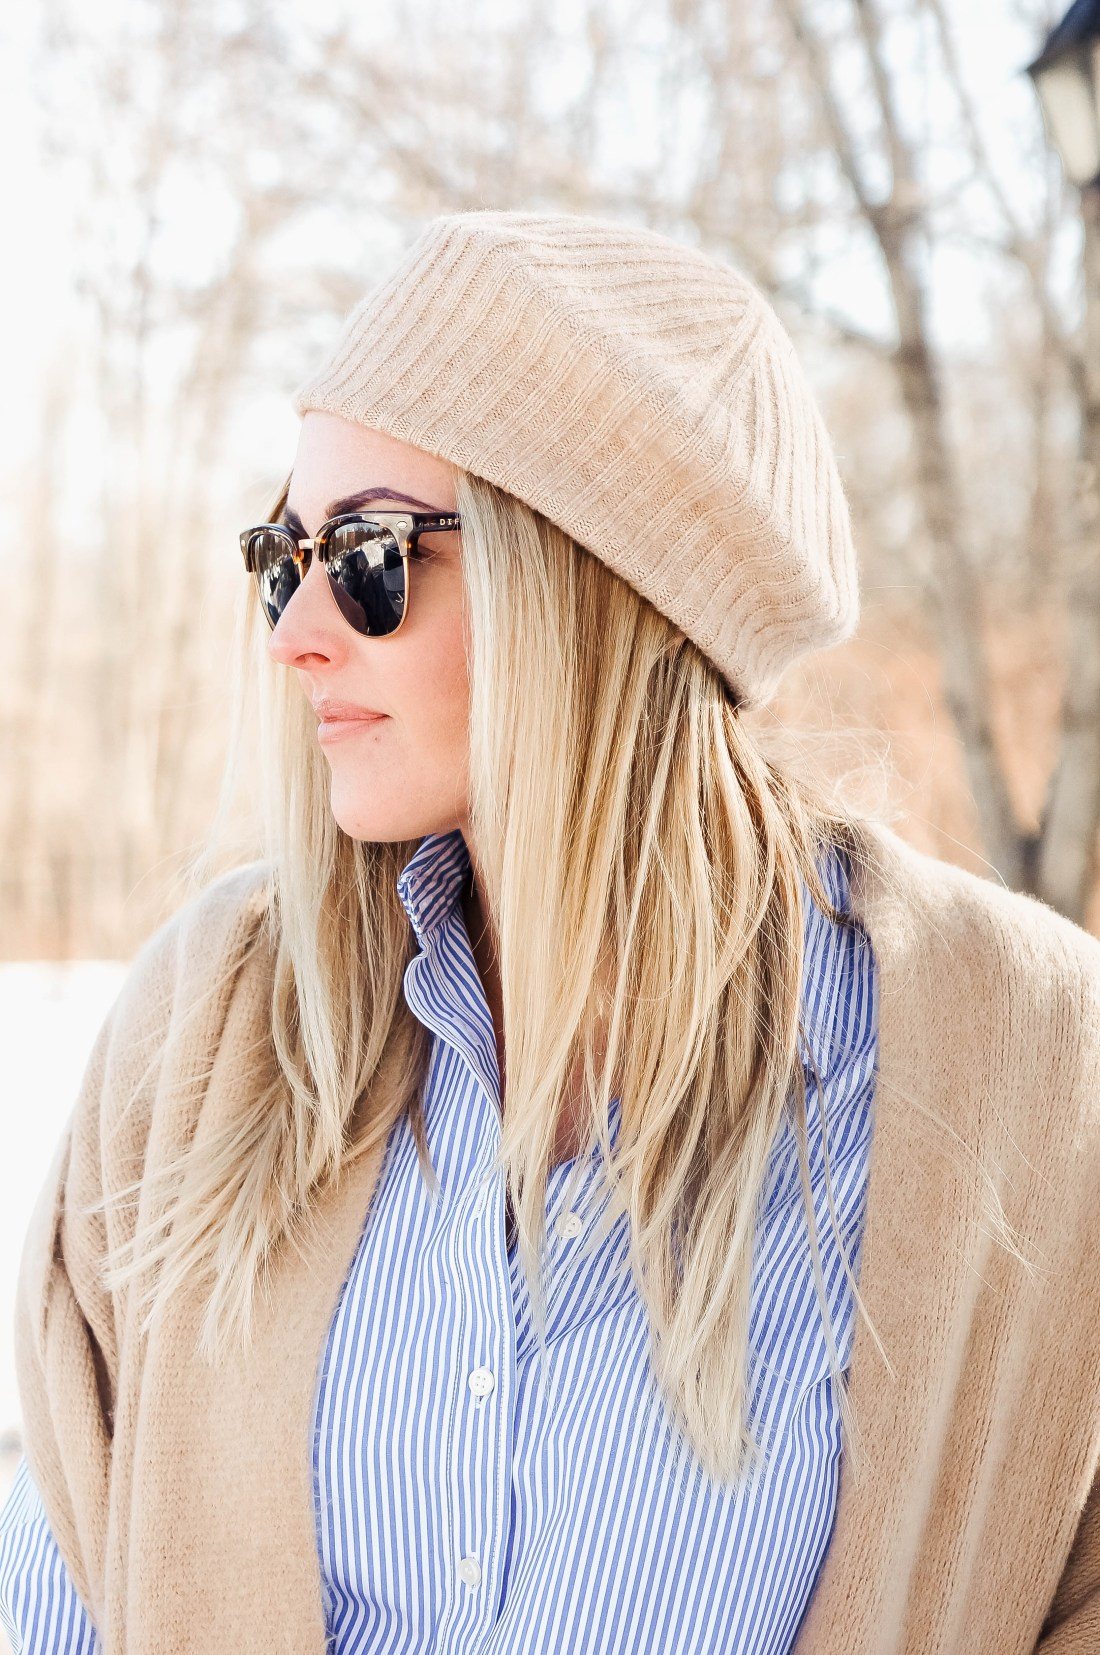 How To Wear Blue and White Stripes For Winter